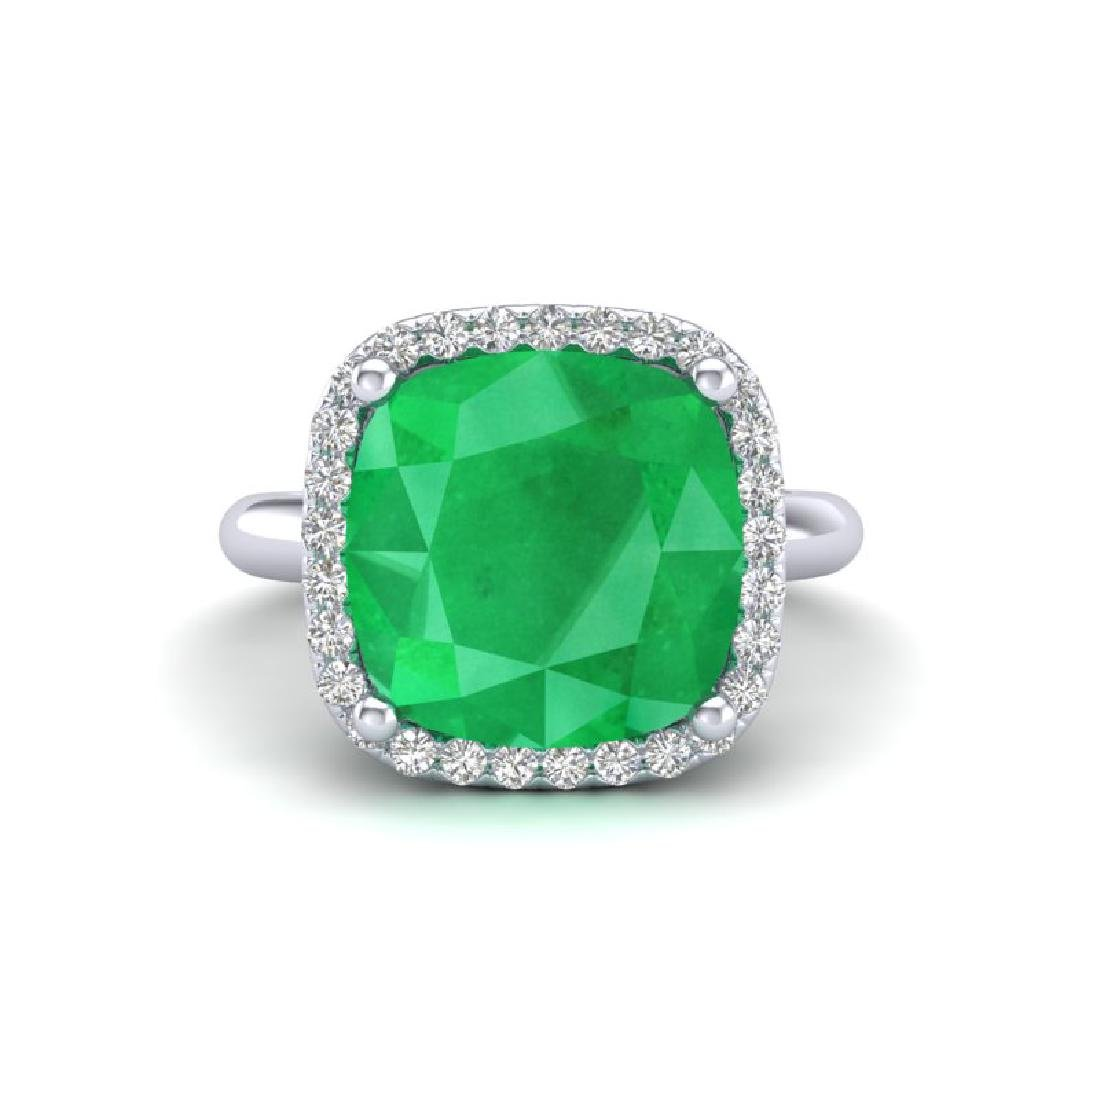 6 CTW Emerald And Micro Pave Halo VS/SI Diamond Ring